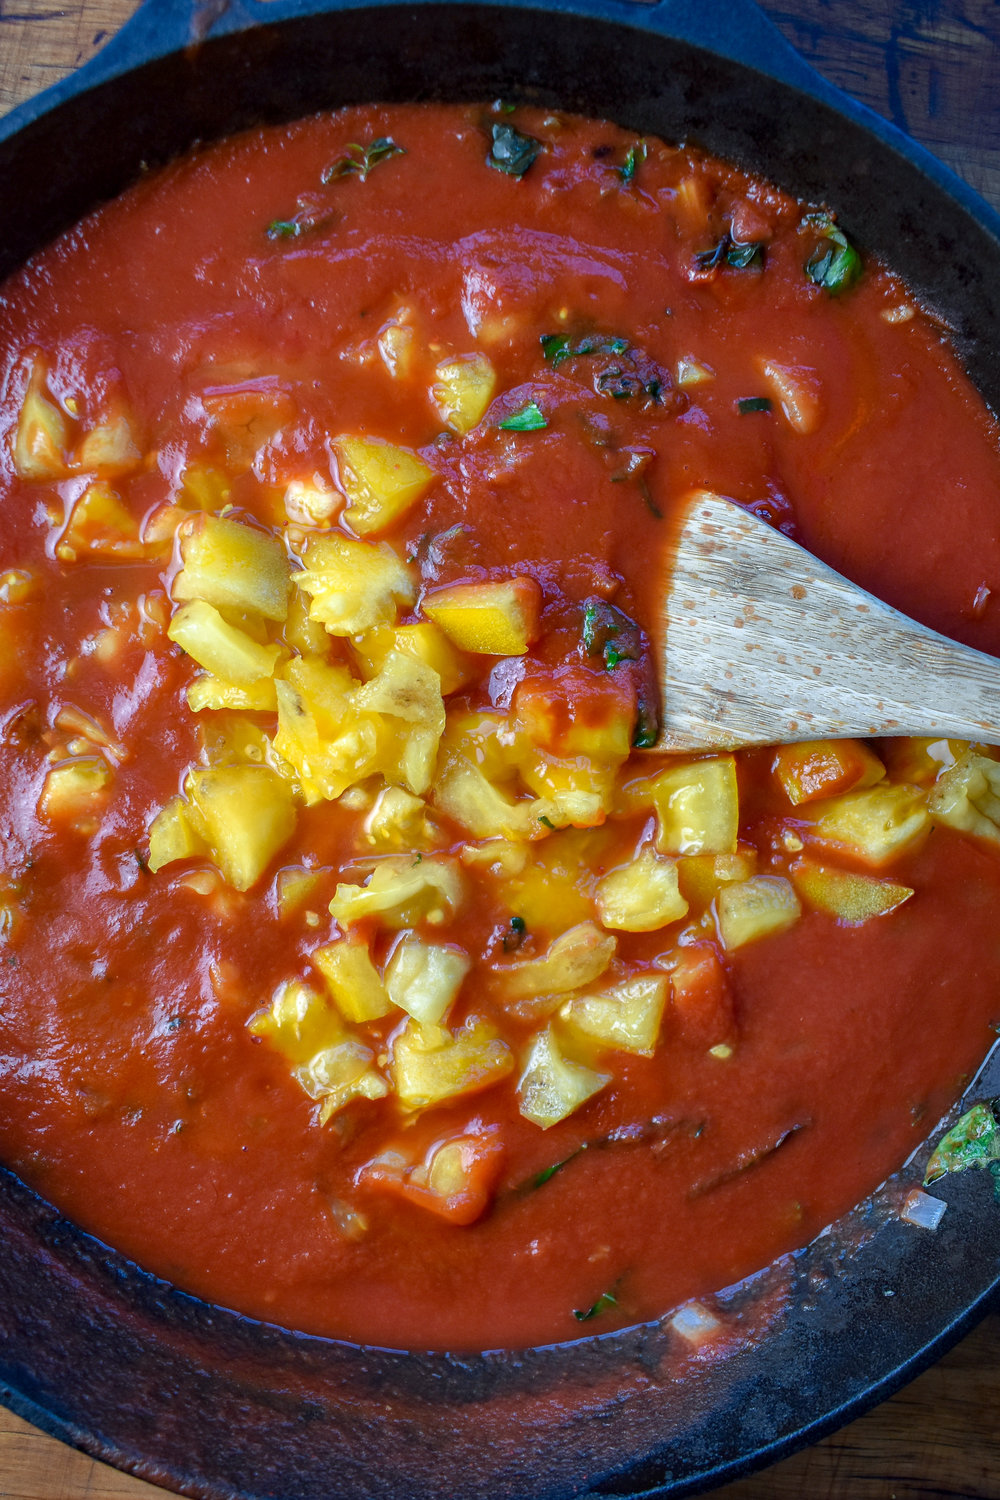 3. Next for the sauce, pour in tomato sauce, add diced tomato, and tomato paste. Reduce heat to low and let simmer. We'll let this simmer till we're done with the rest of the recipe.